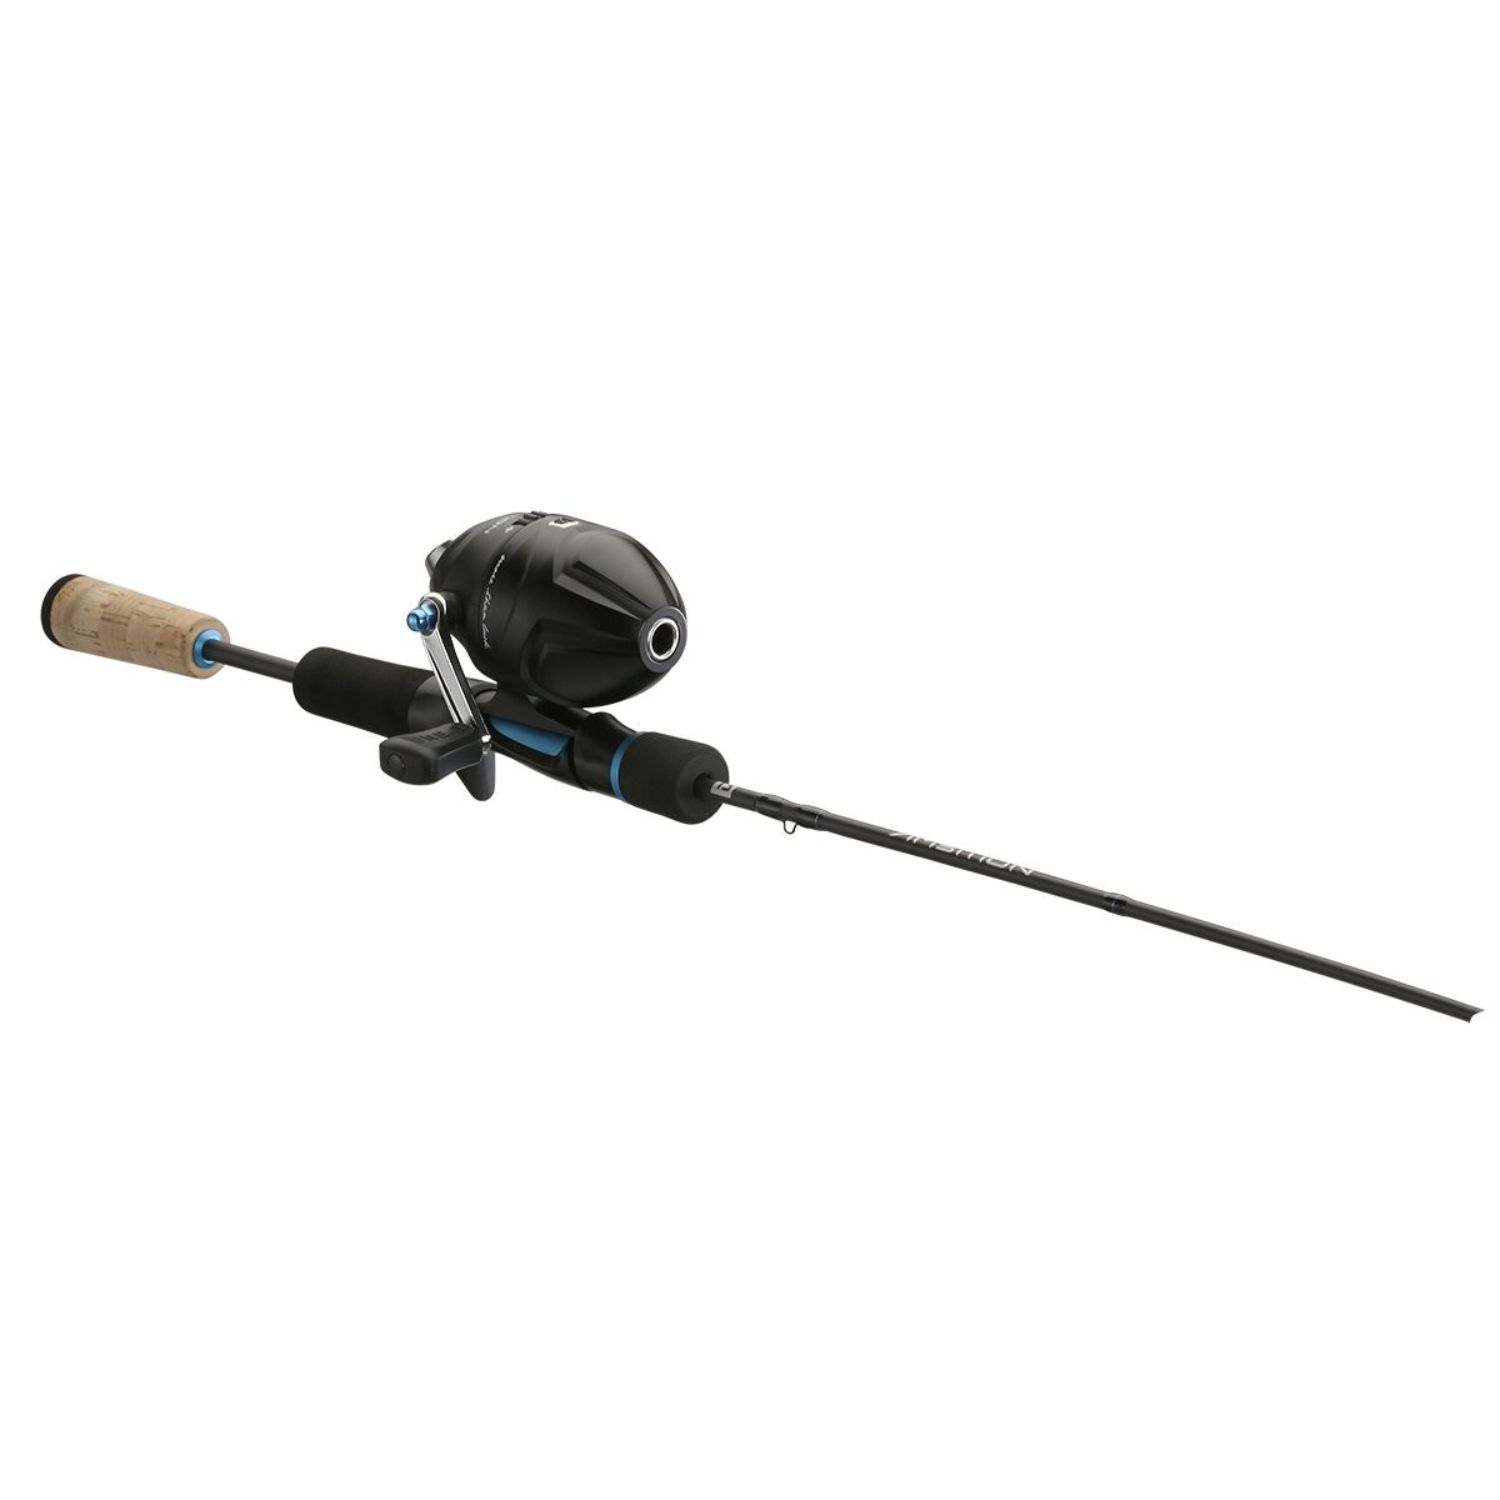 13 Fishing Ambition 5 ft 6 in M Spincast Combo